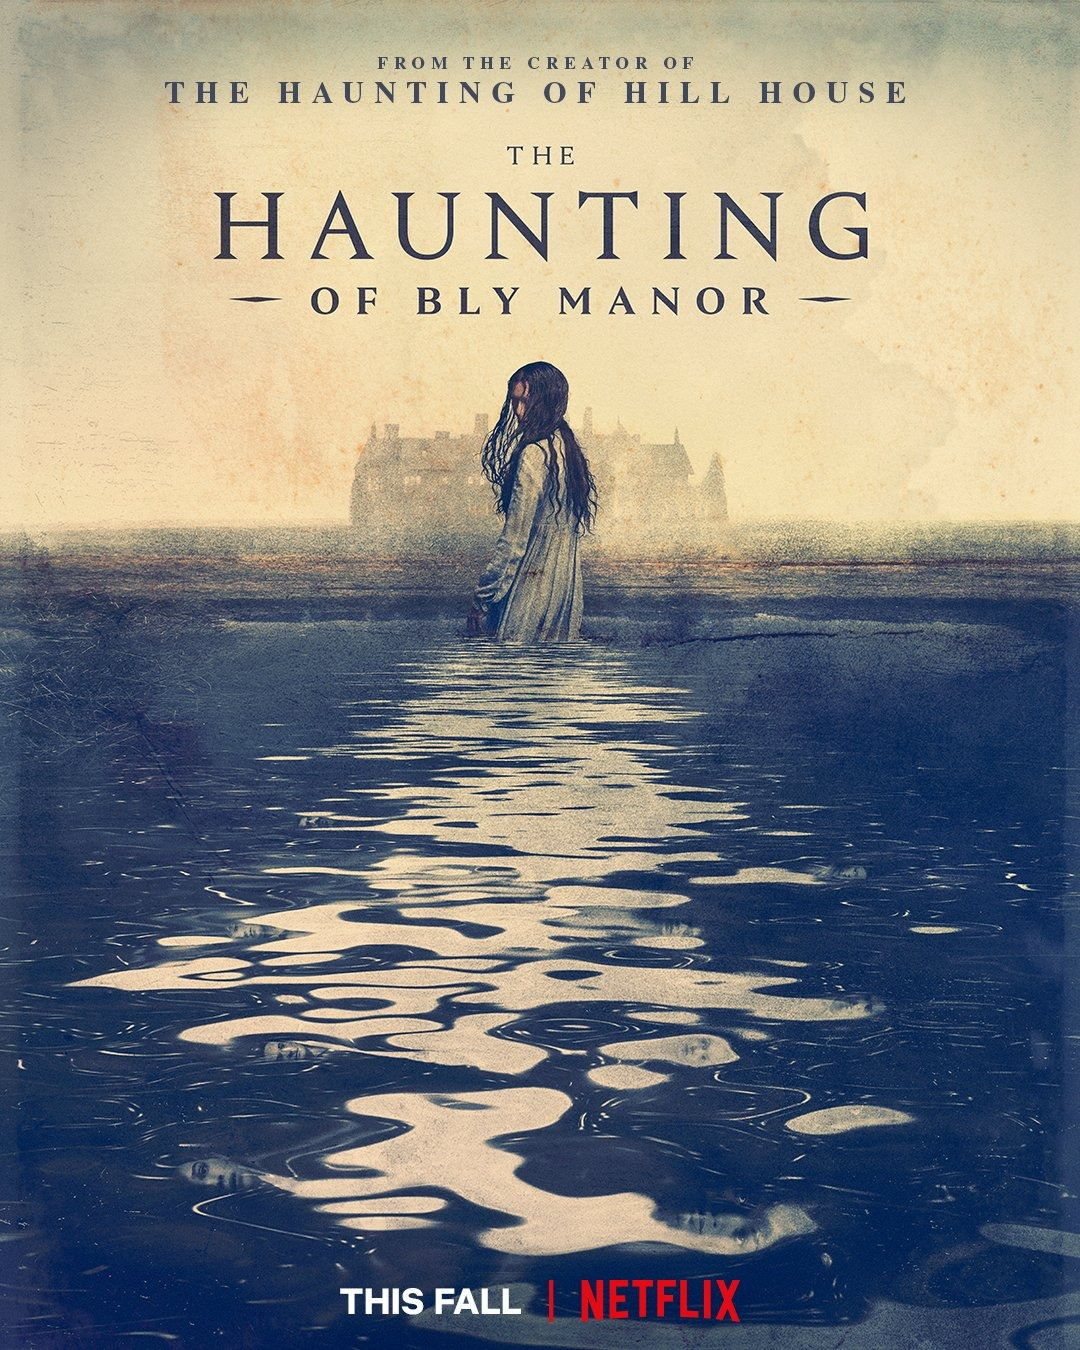 The Haunting of Bly Manor S01 (2020) Hindi Complete Web Series NF 480p HDRip 700MB